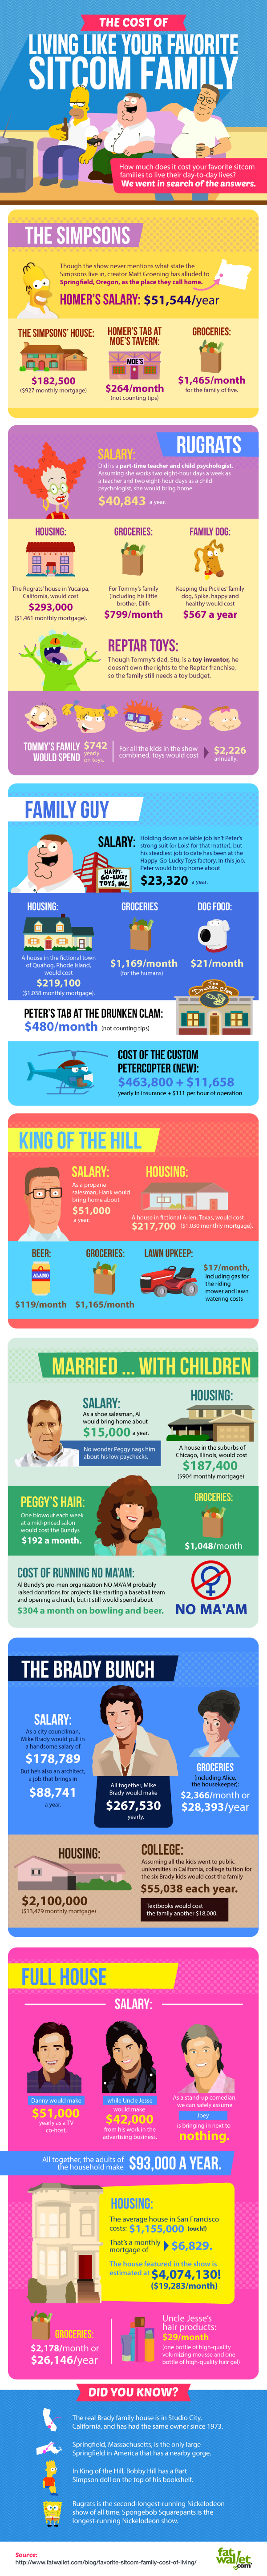 The Cost of Living Like Your Favorite Sitcom Family